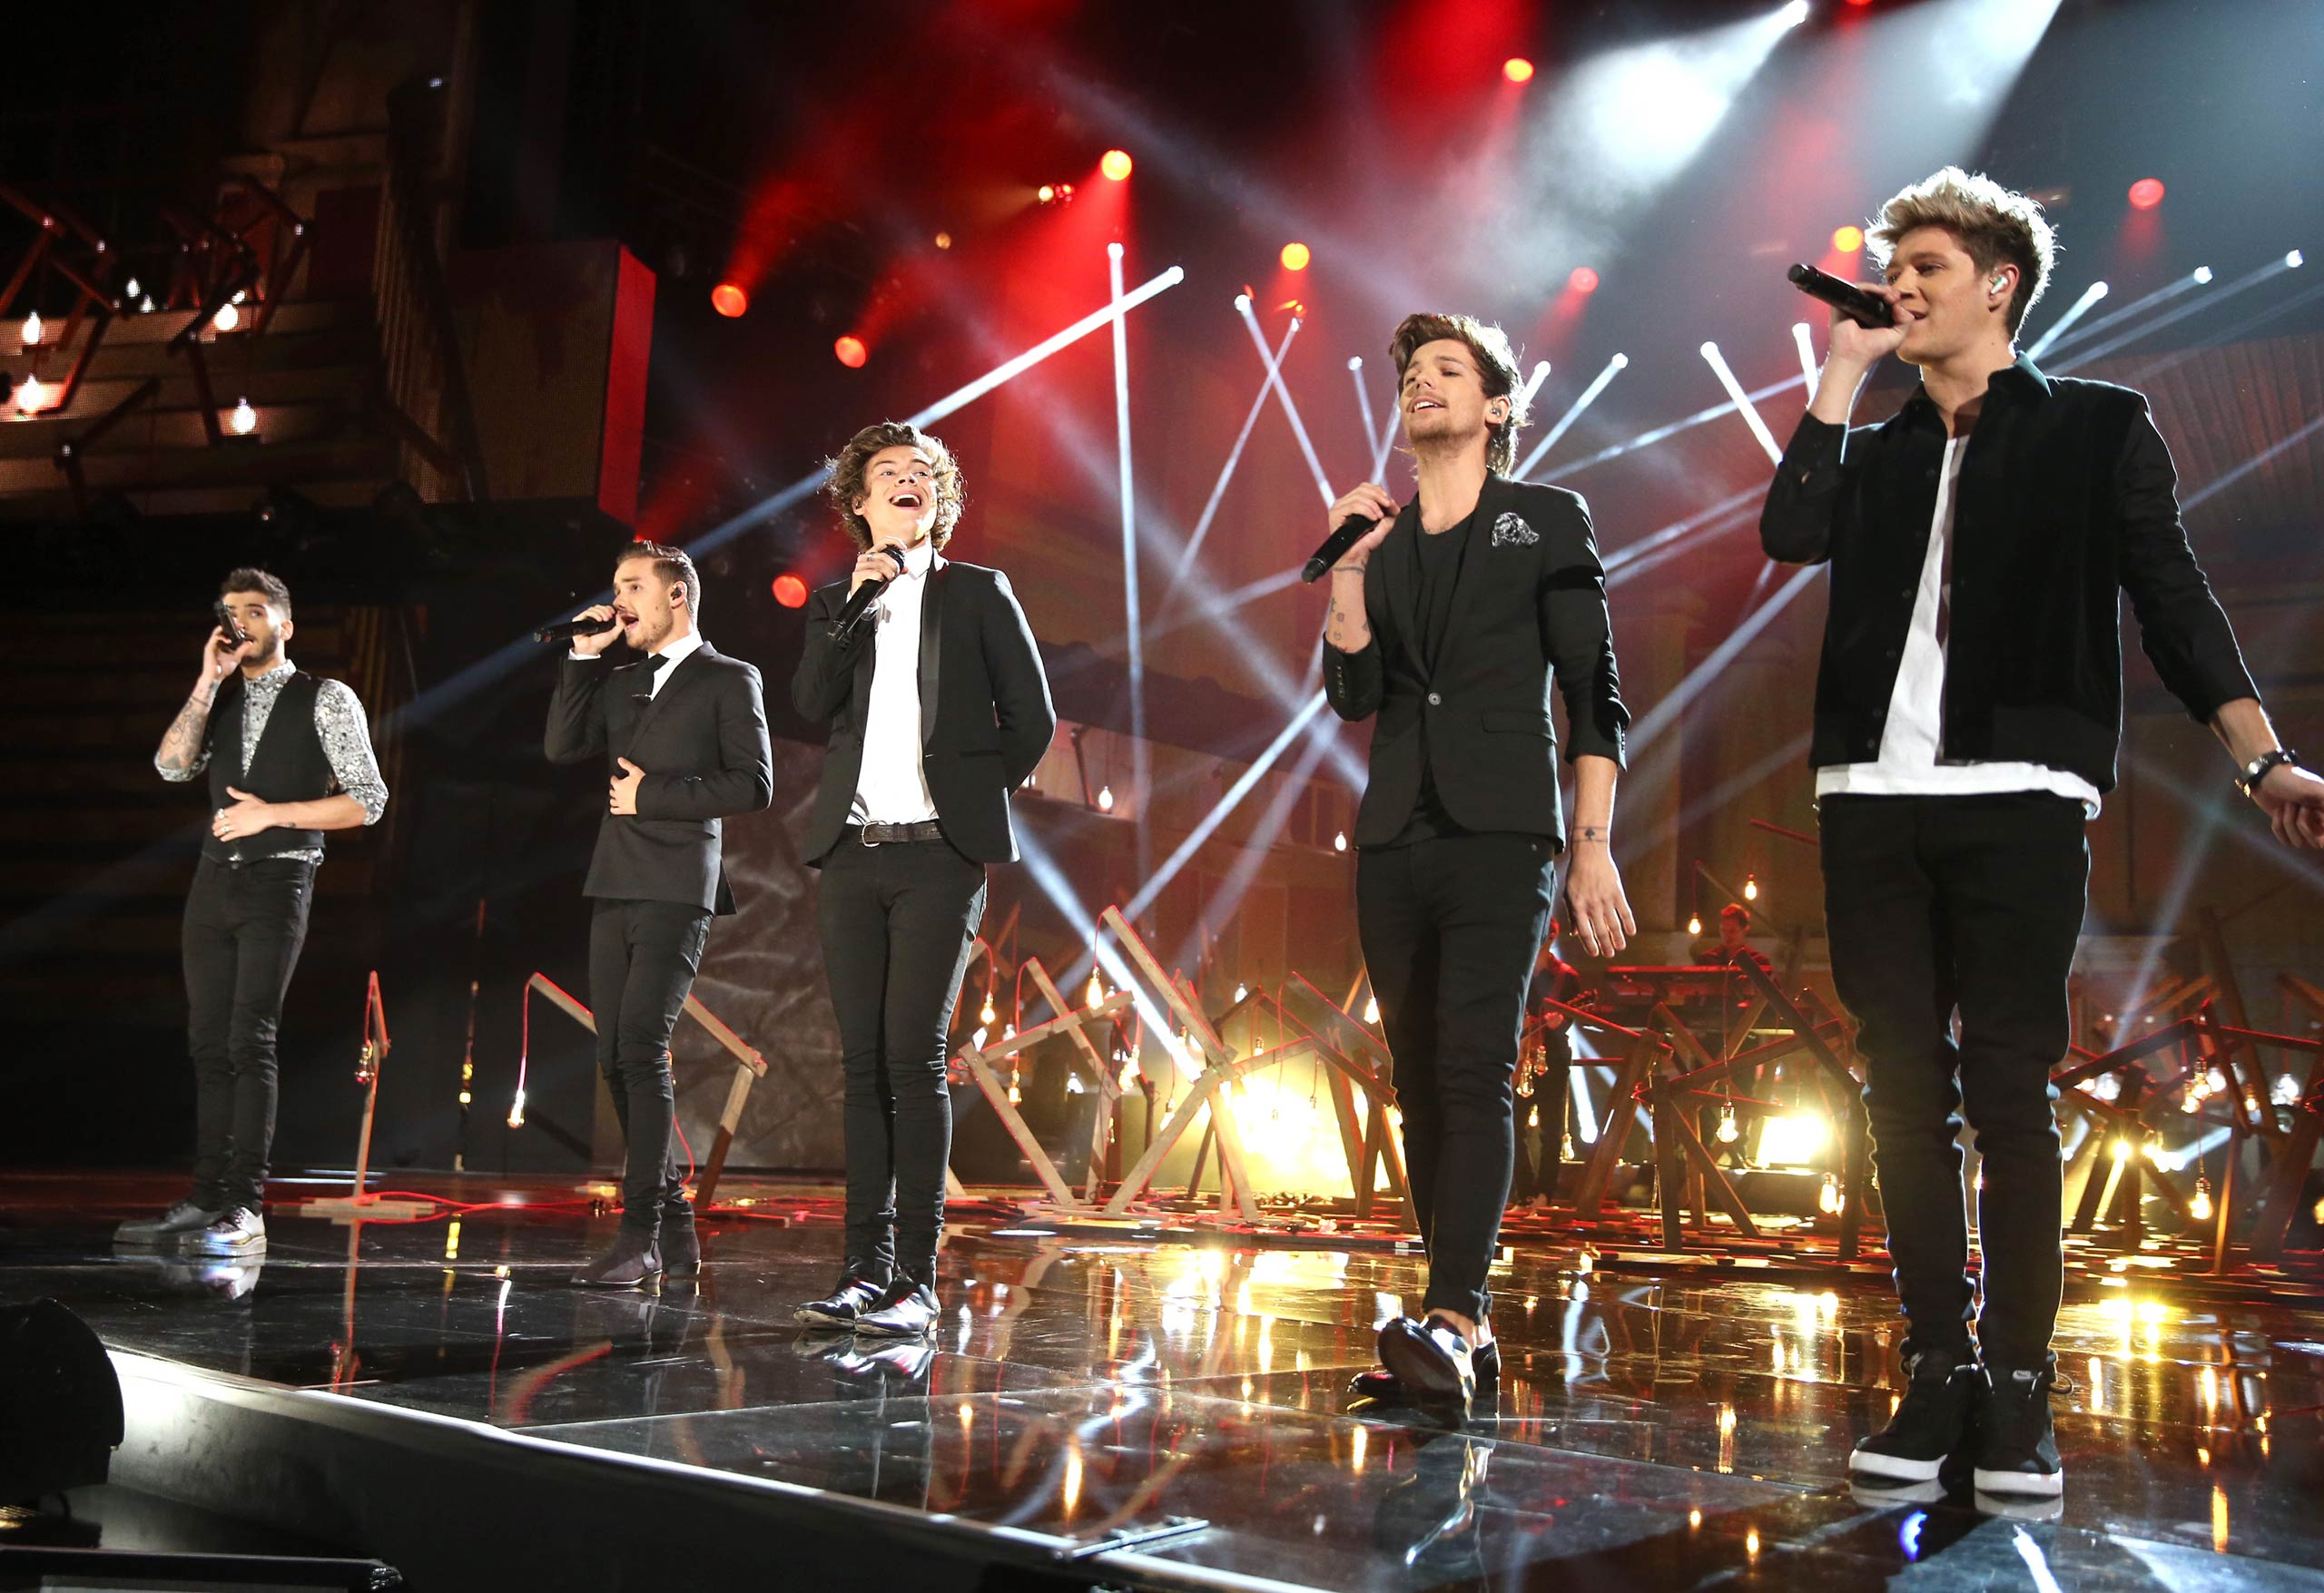 One Direction performs onstage during the 2013 American Music Awards at Nokia Theatre L.A. Live in Los Angeles, Calif. in 2013.